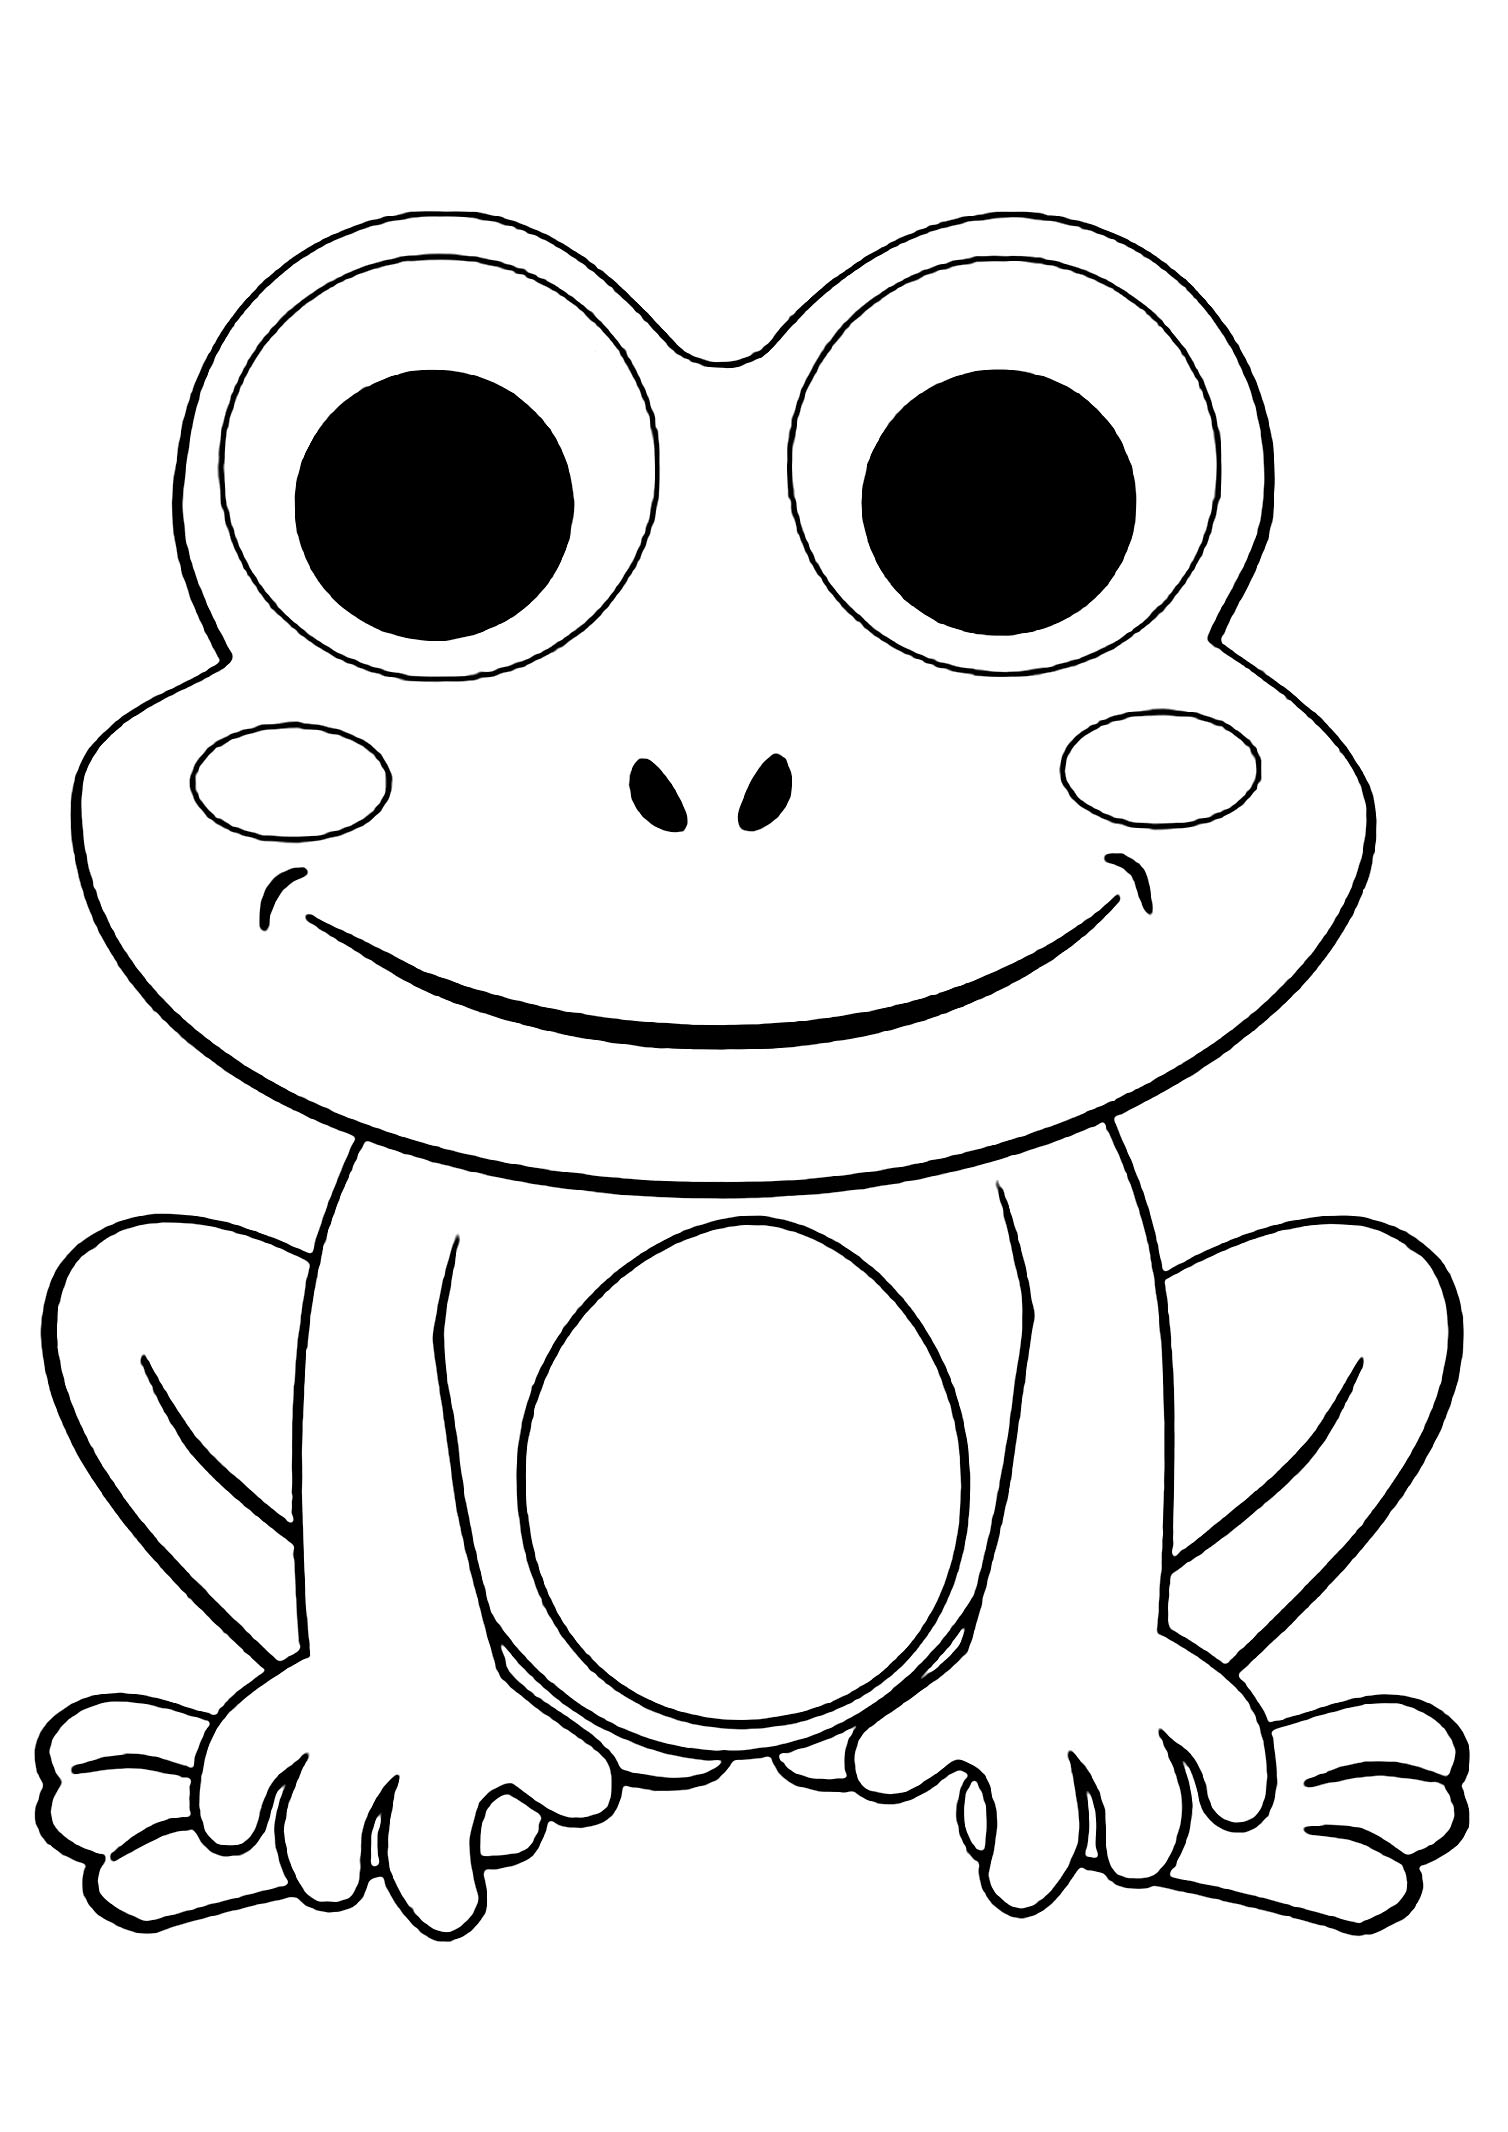 frog to color print download frog coloring pages theme for kids color frog to 1 1